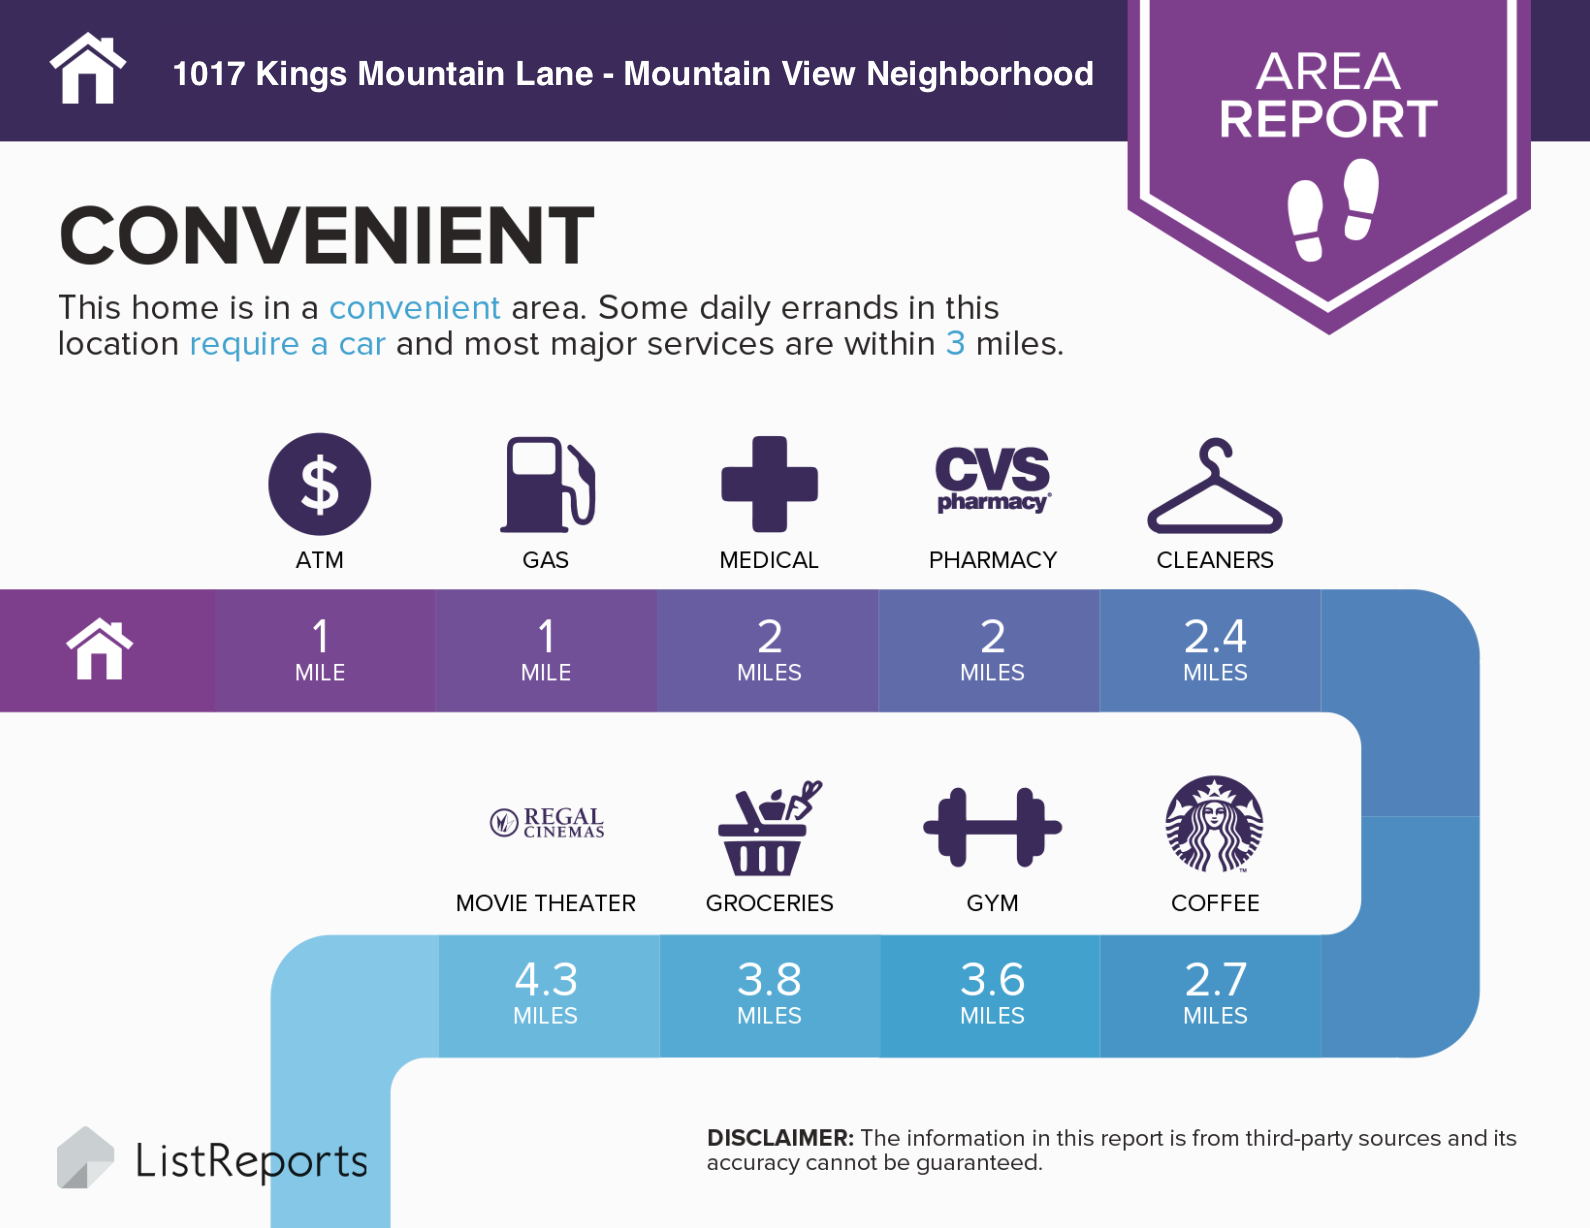 What's nearby 1017 Kings Mountain Lane in Mountain View?